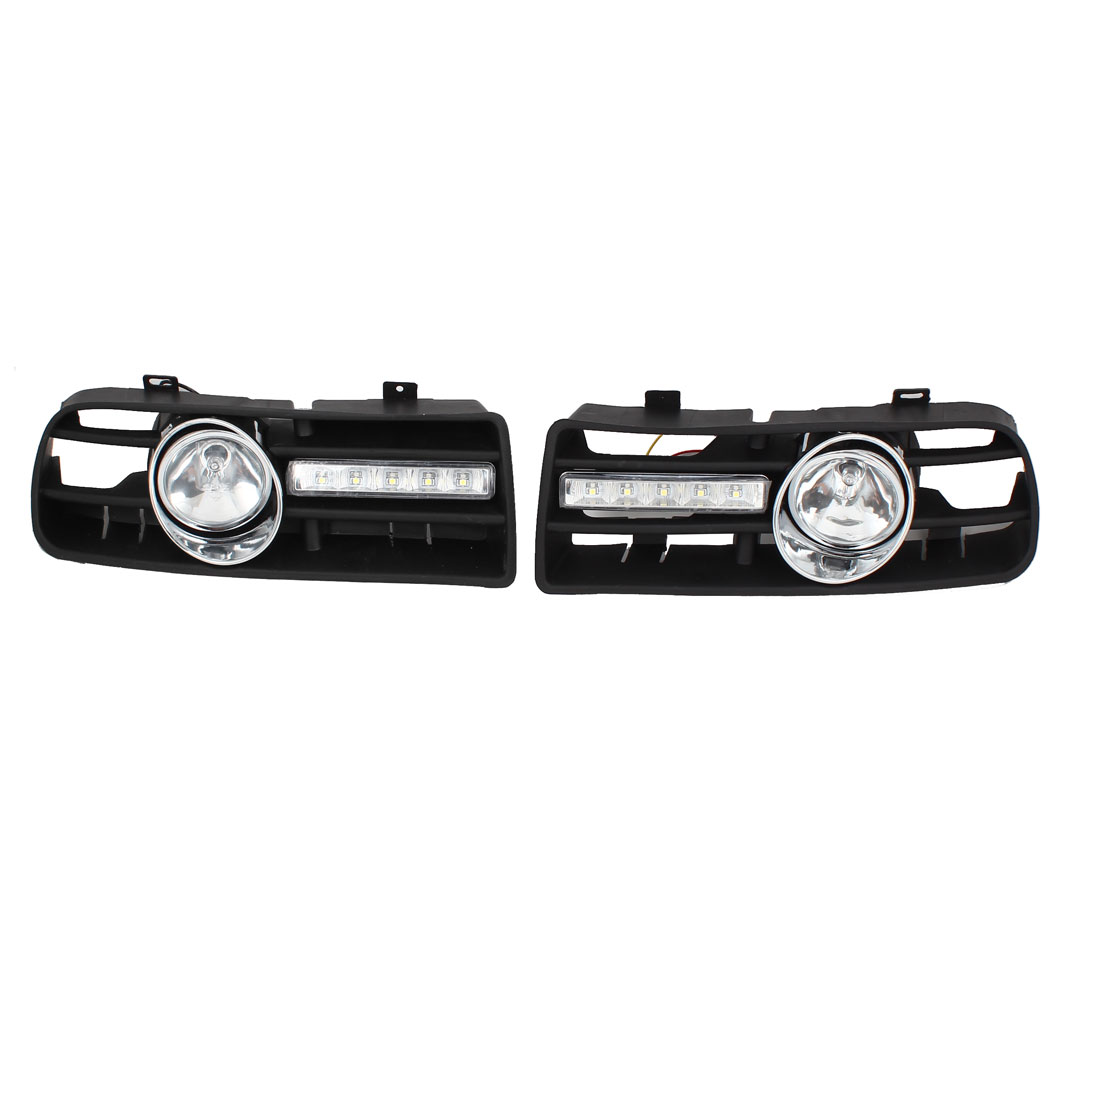 Pair Front Fog Light Lamp White LED Lower Grille DRL Bright for 1999-2004 Golf